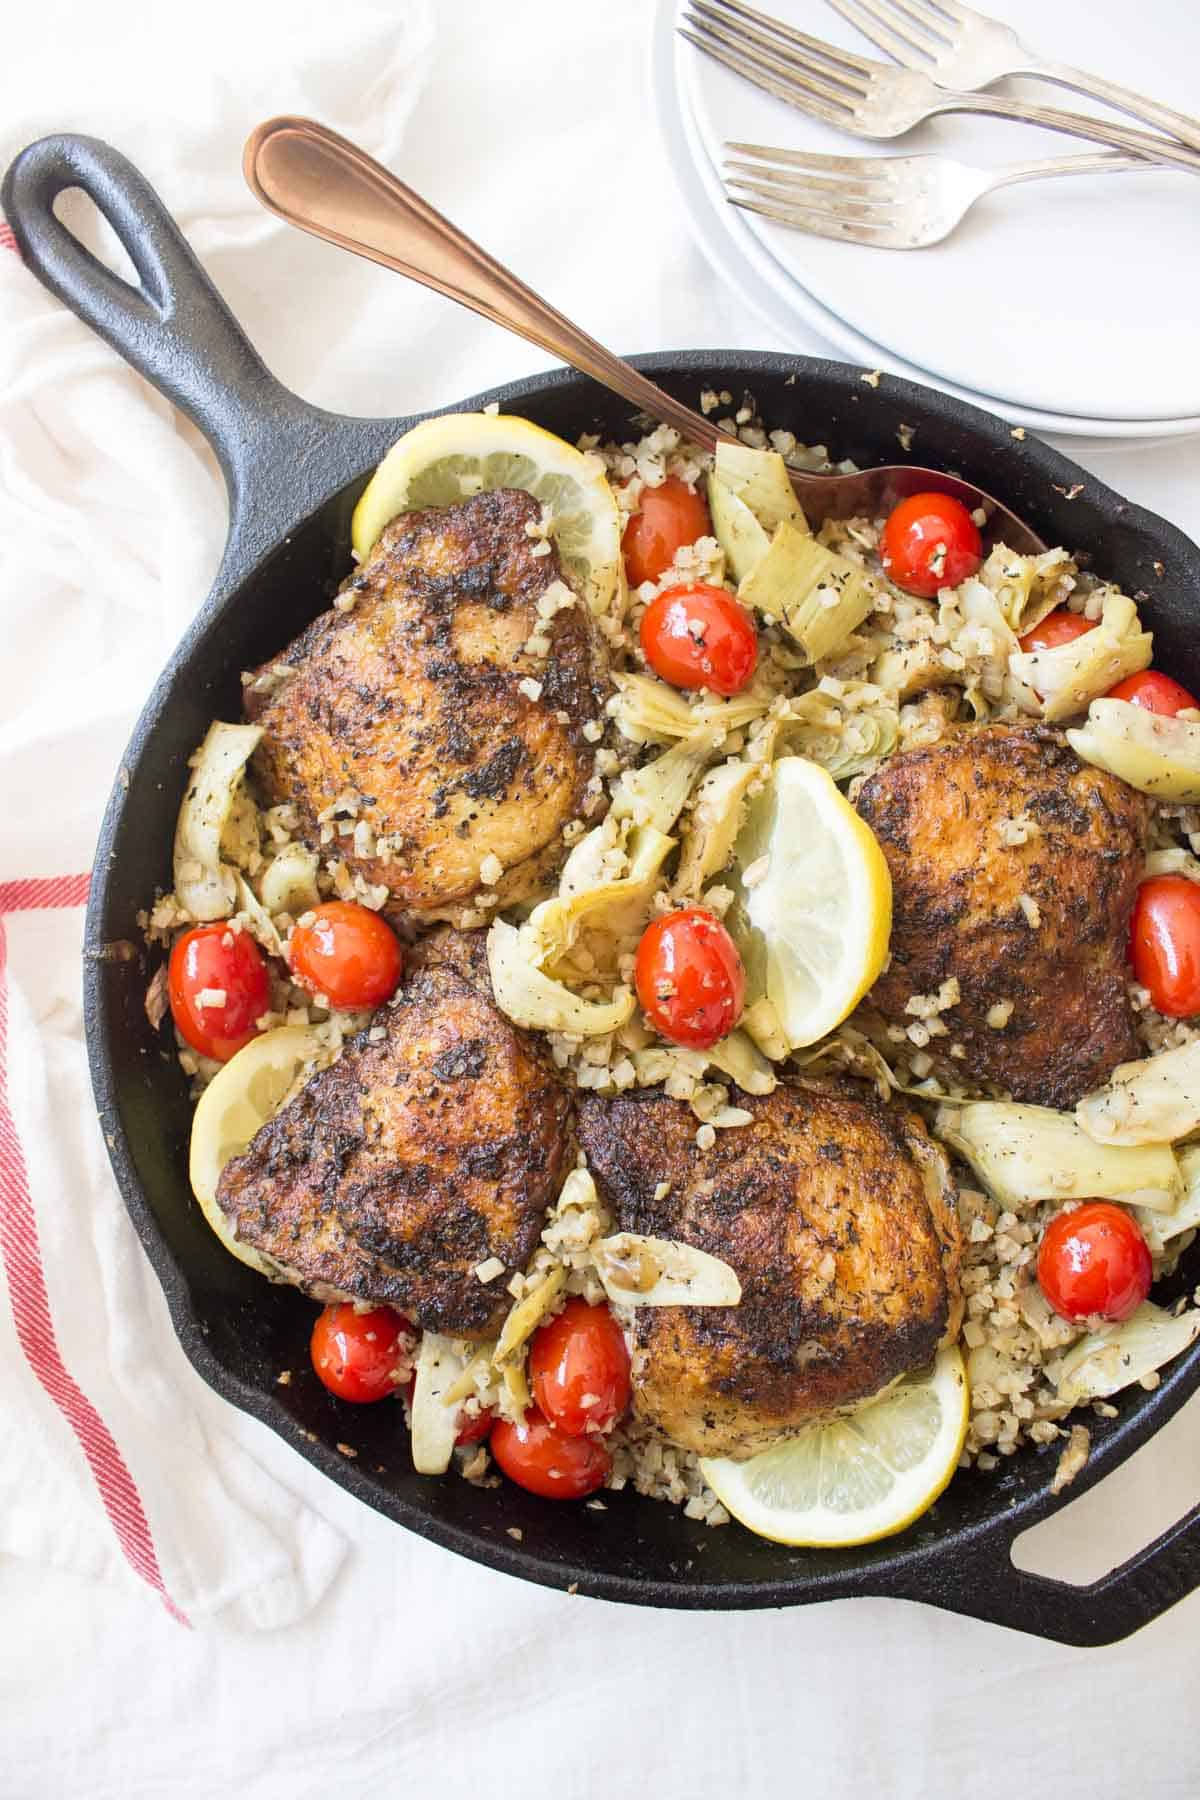 This Greek Lemon Chicken is bursting with flavors from a delicious marinade, cherry tomatoes, artichokes, and a lemon cauliflower rice all made in one pan!